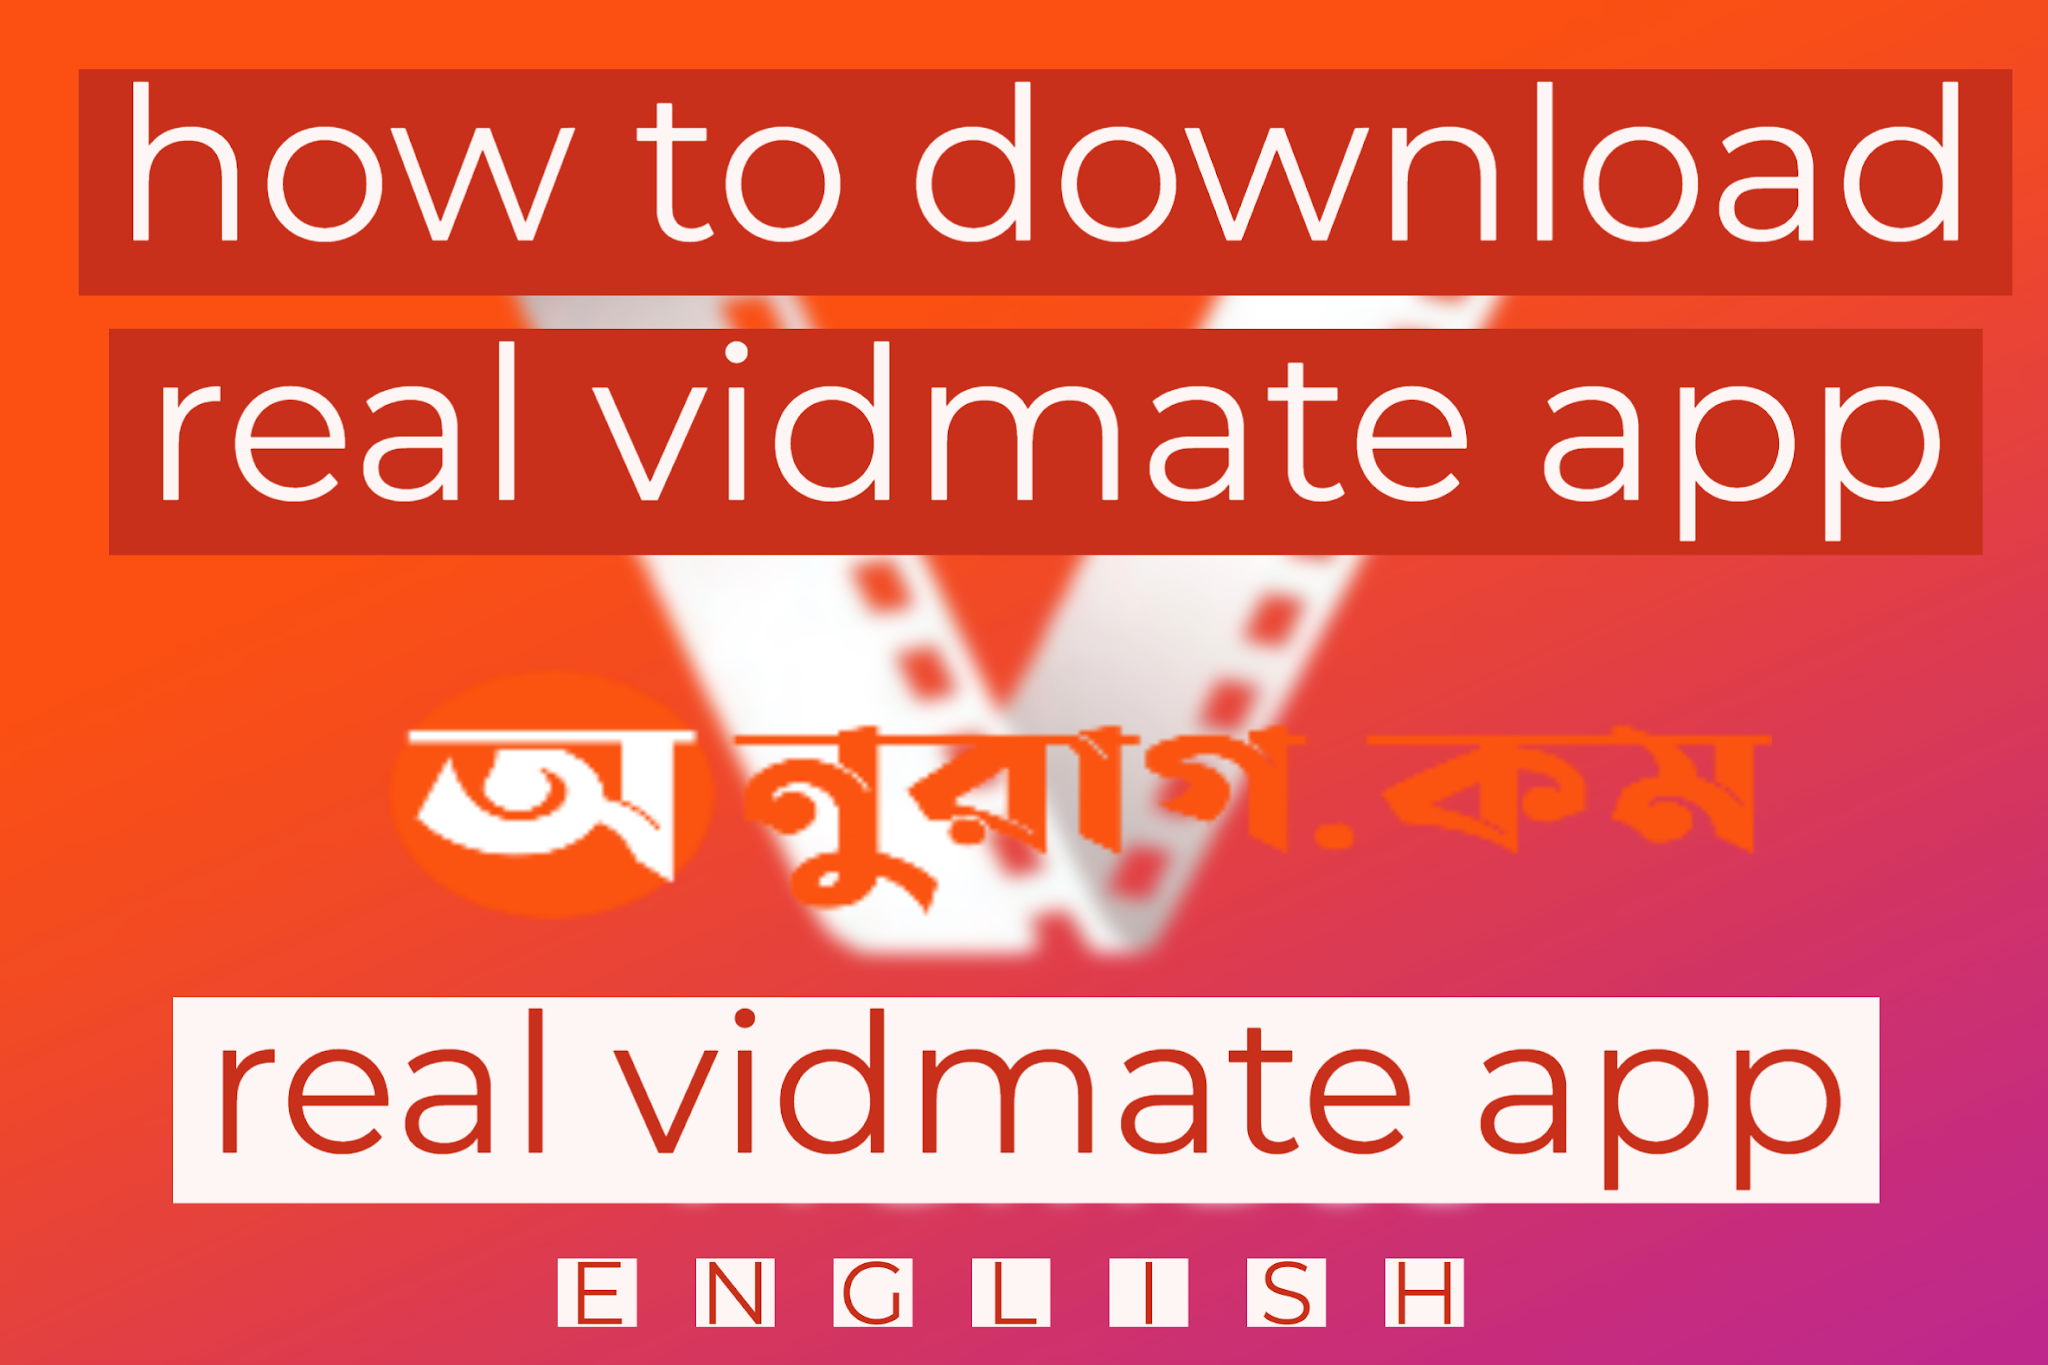 how to download real vidmate app